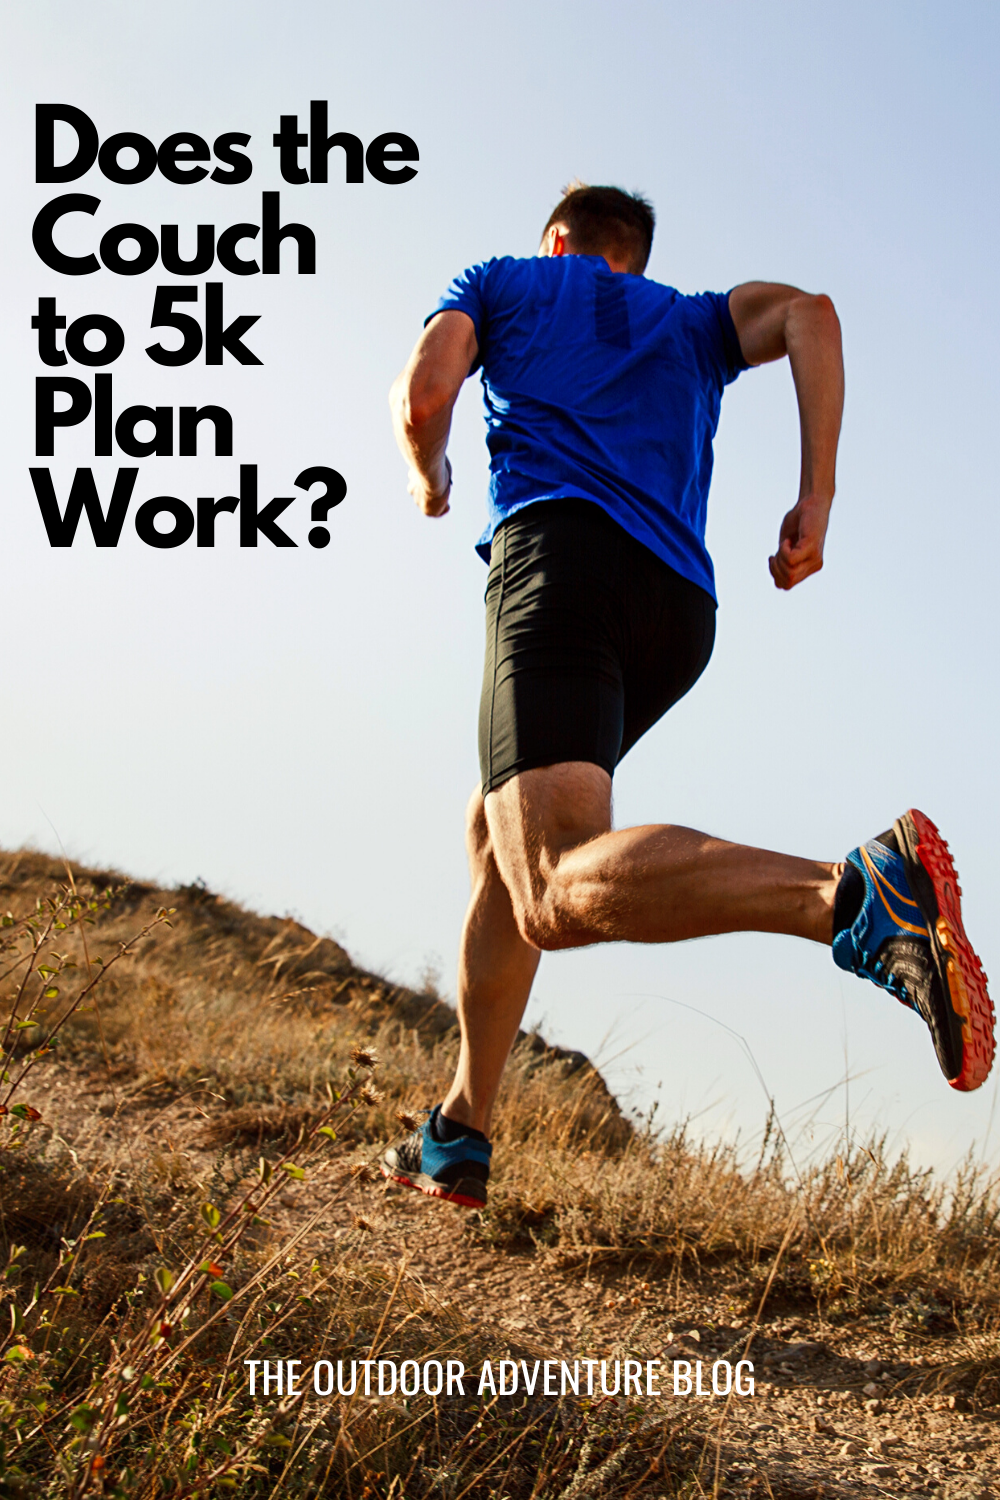 Does the Couch to 5k Plan Work?  #couchto5k #running #fitness #runner #trailrunning #getfit #couchto...